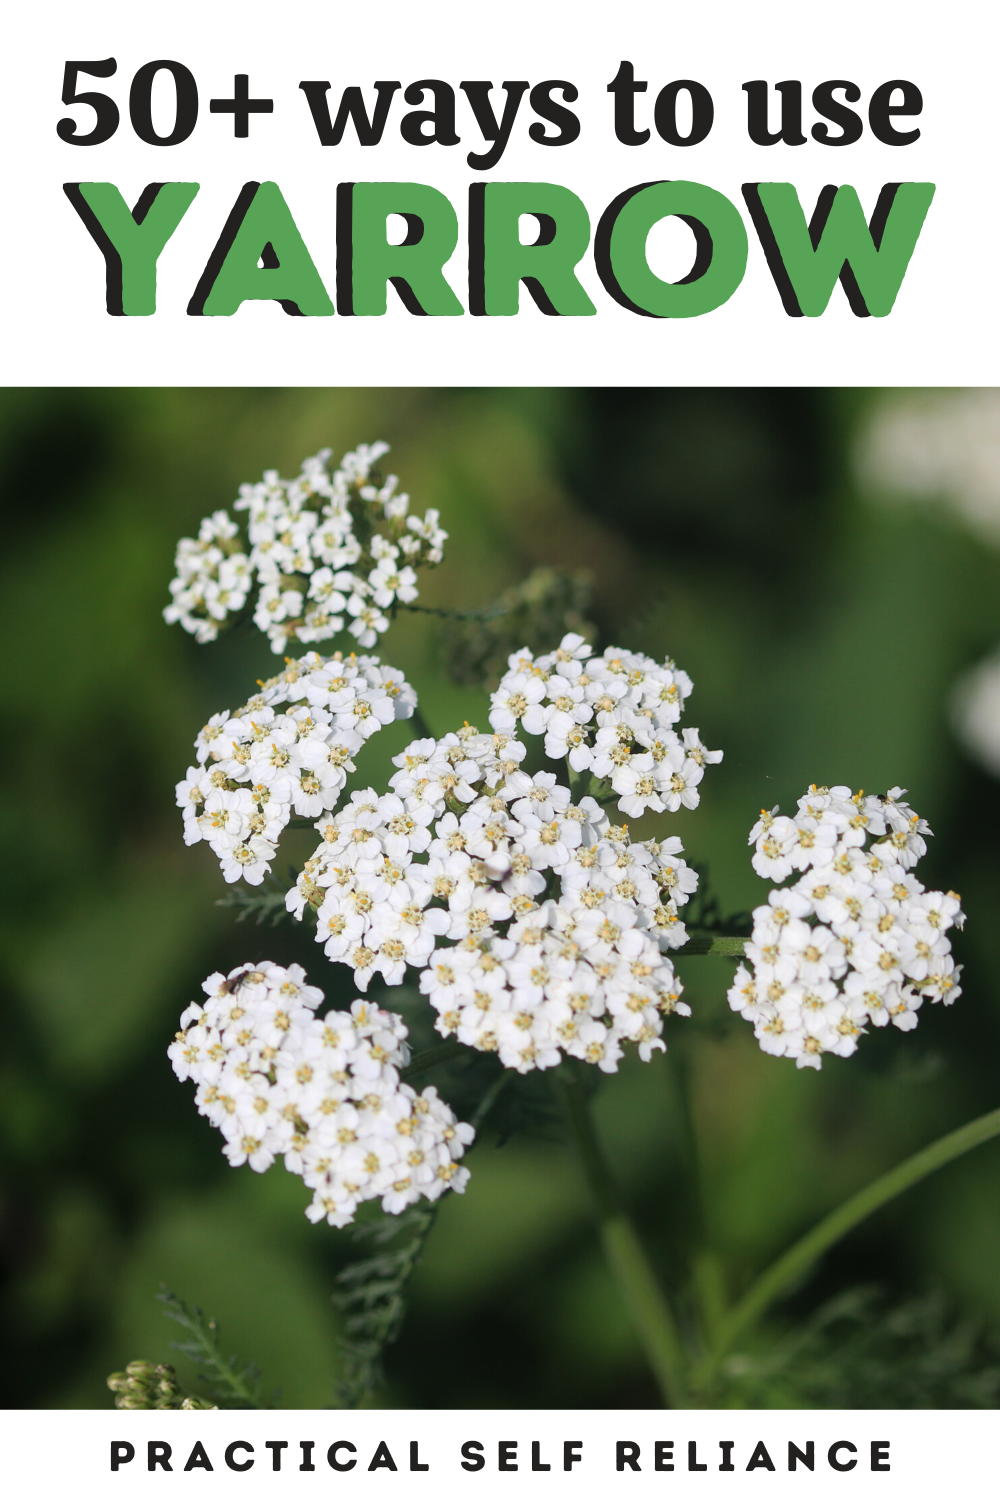 50 Ways To Use Yarrow In 2020 Yarrow Uses Yarrow Fruit Garden Plans